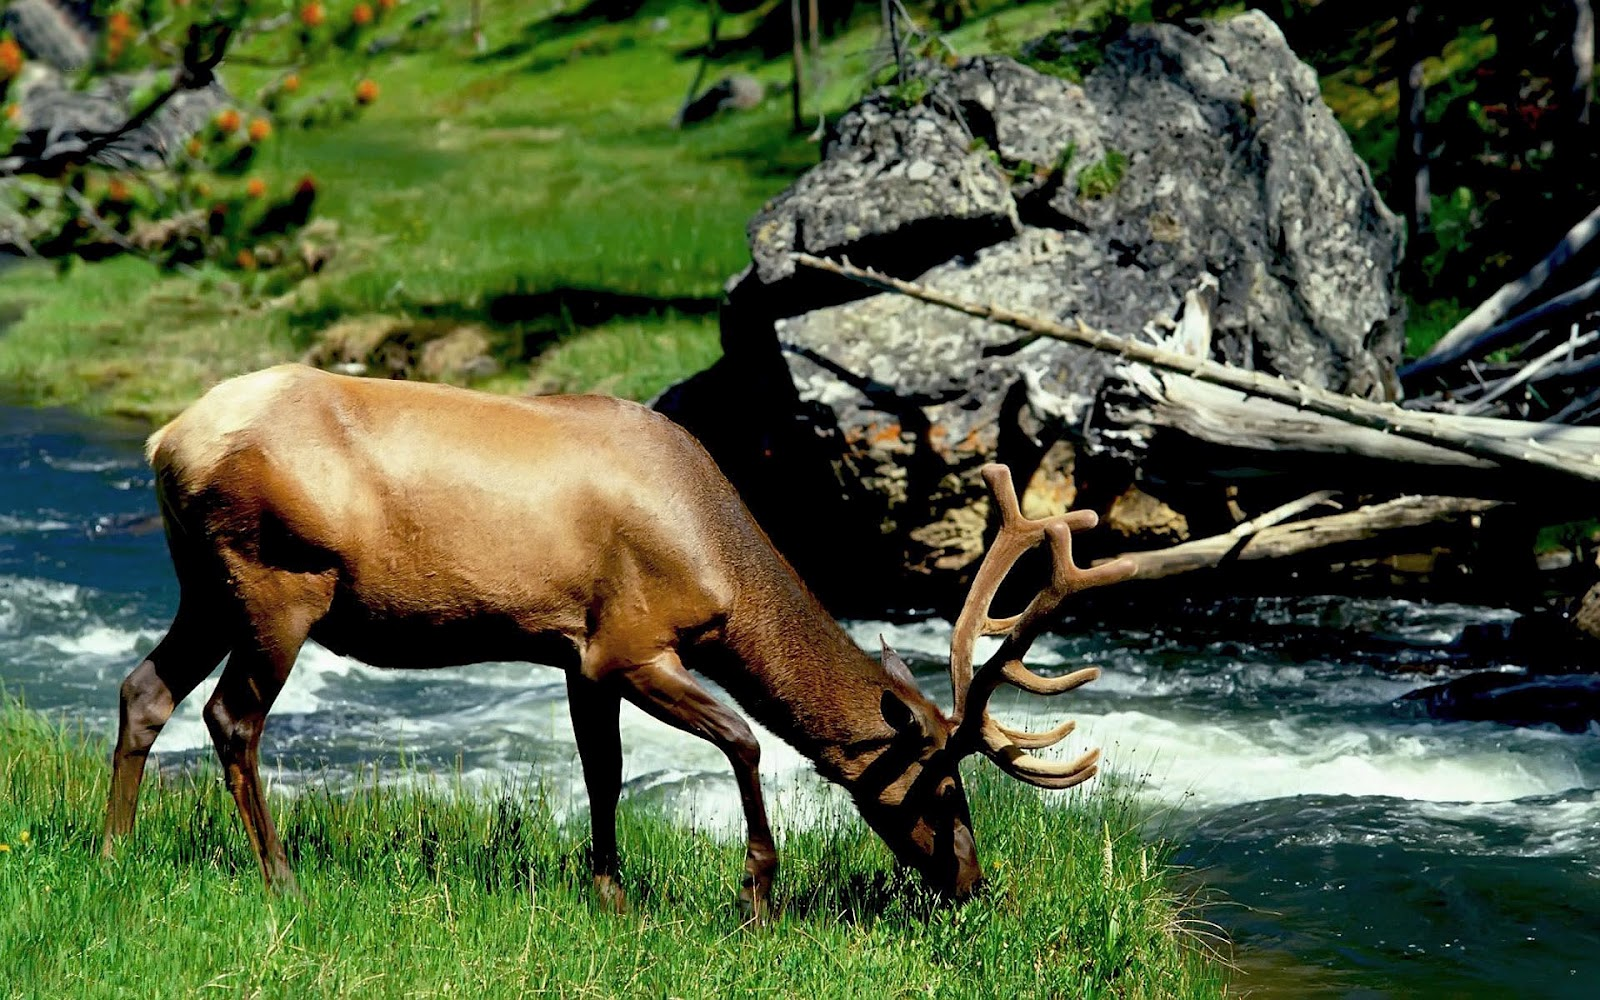 deer hd wallpapers deer hd wallpapers deer hd wallpapers deer hd 1600x1000